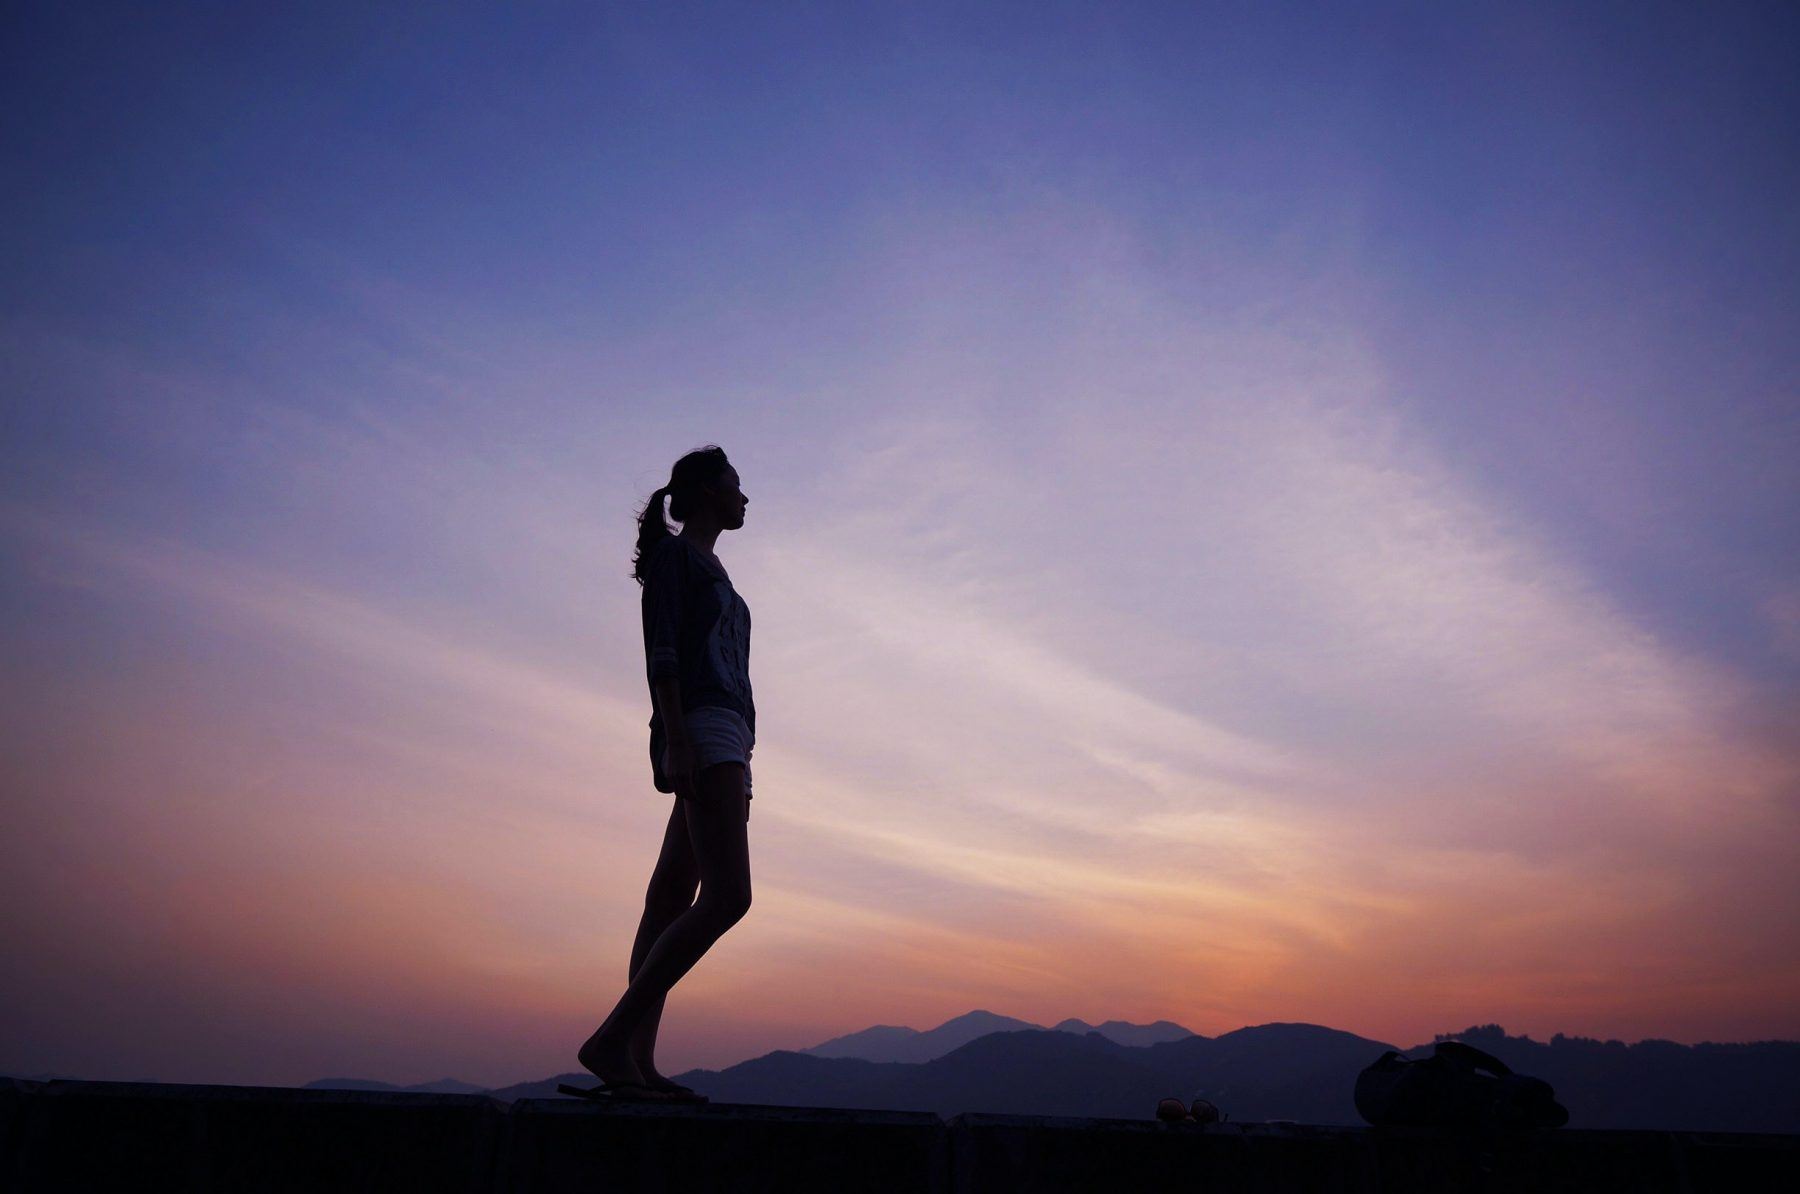 in article about working out when you have disordered behaviors, photo of person silhouetted against sunset